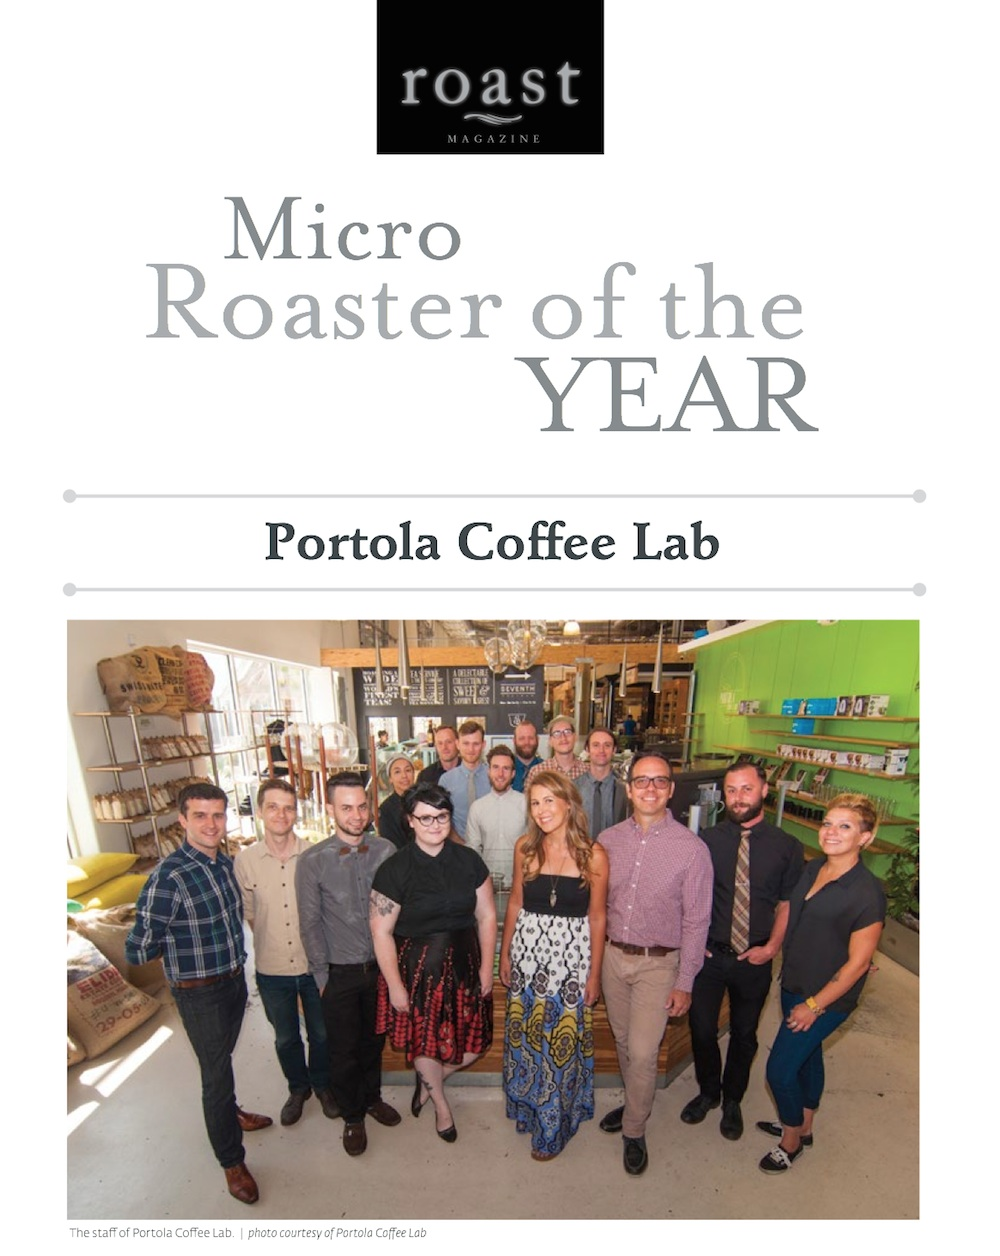 Roast Magazine 2014 Roaster of the Year Portola Coffee Lab